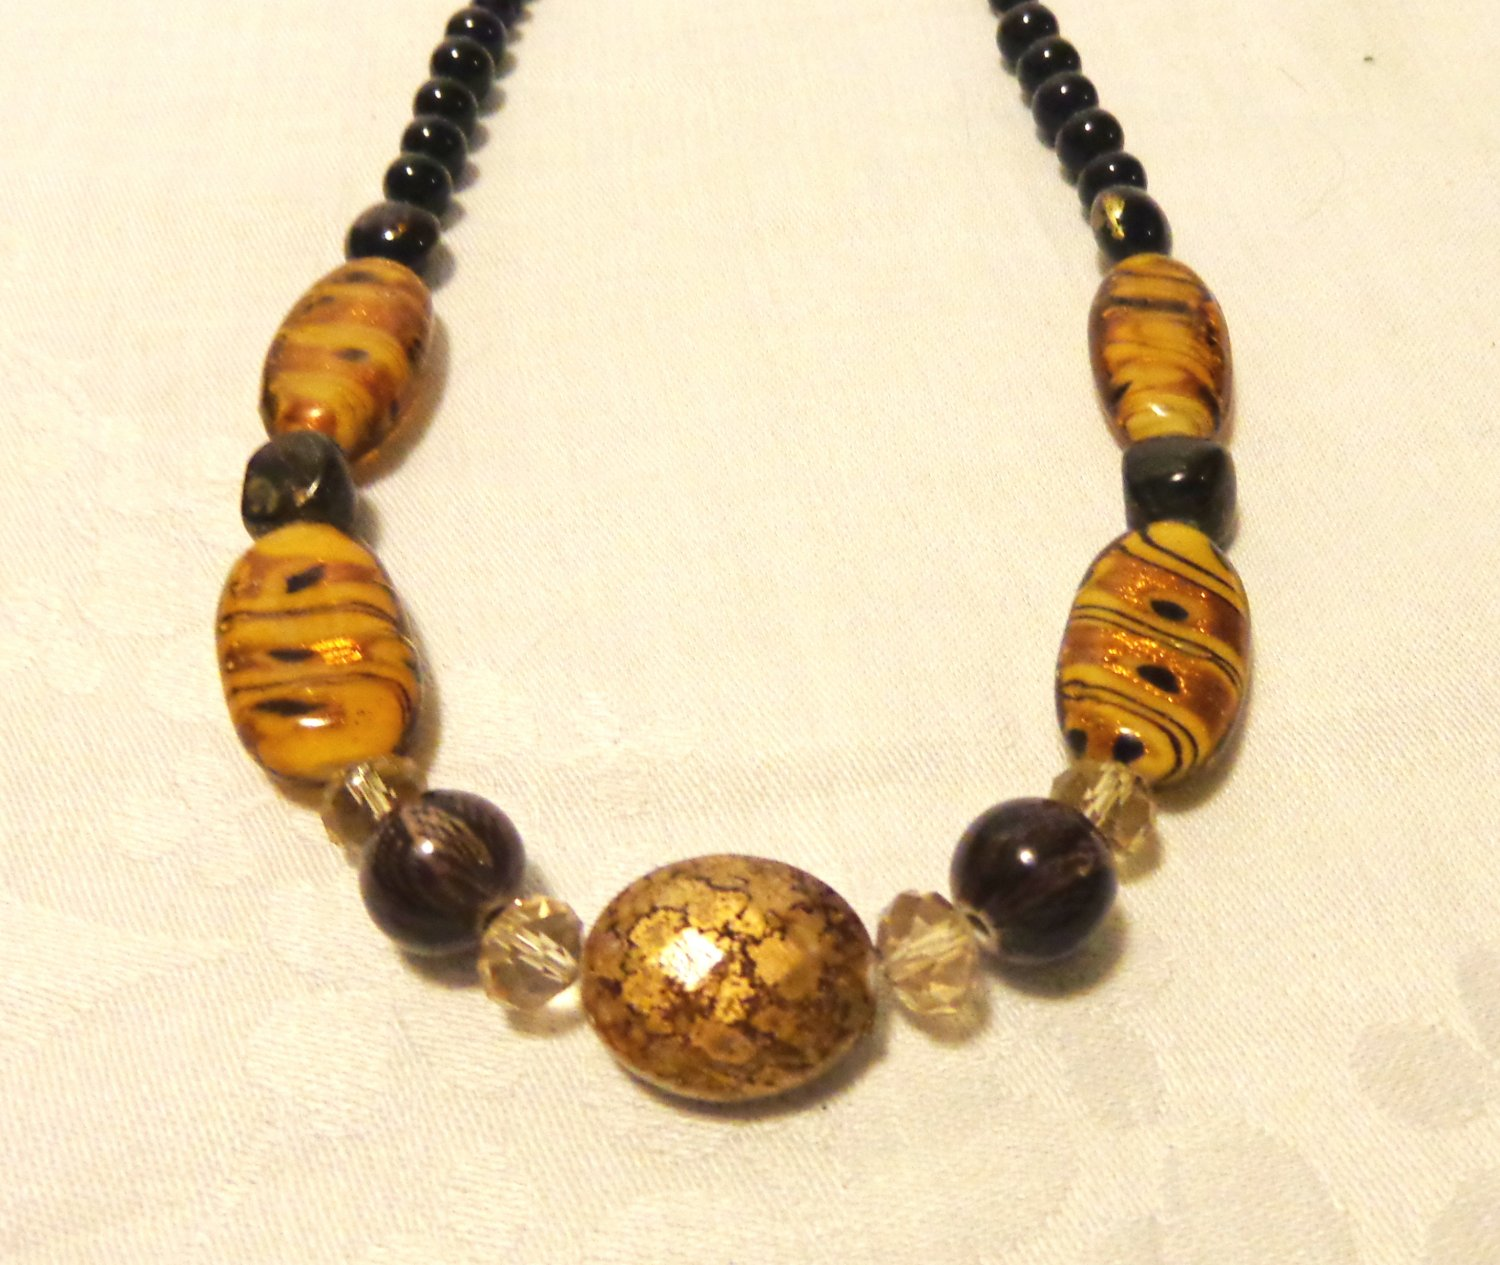 Dichroic and mixed bead necklace neutral tones handmade 24 inches springring clasp ll3516